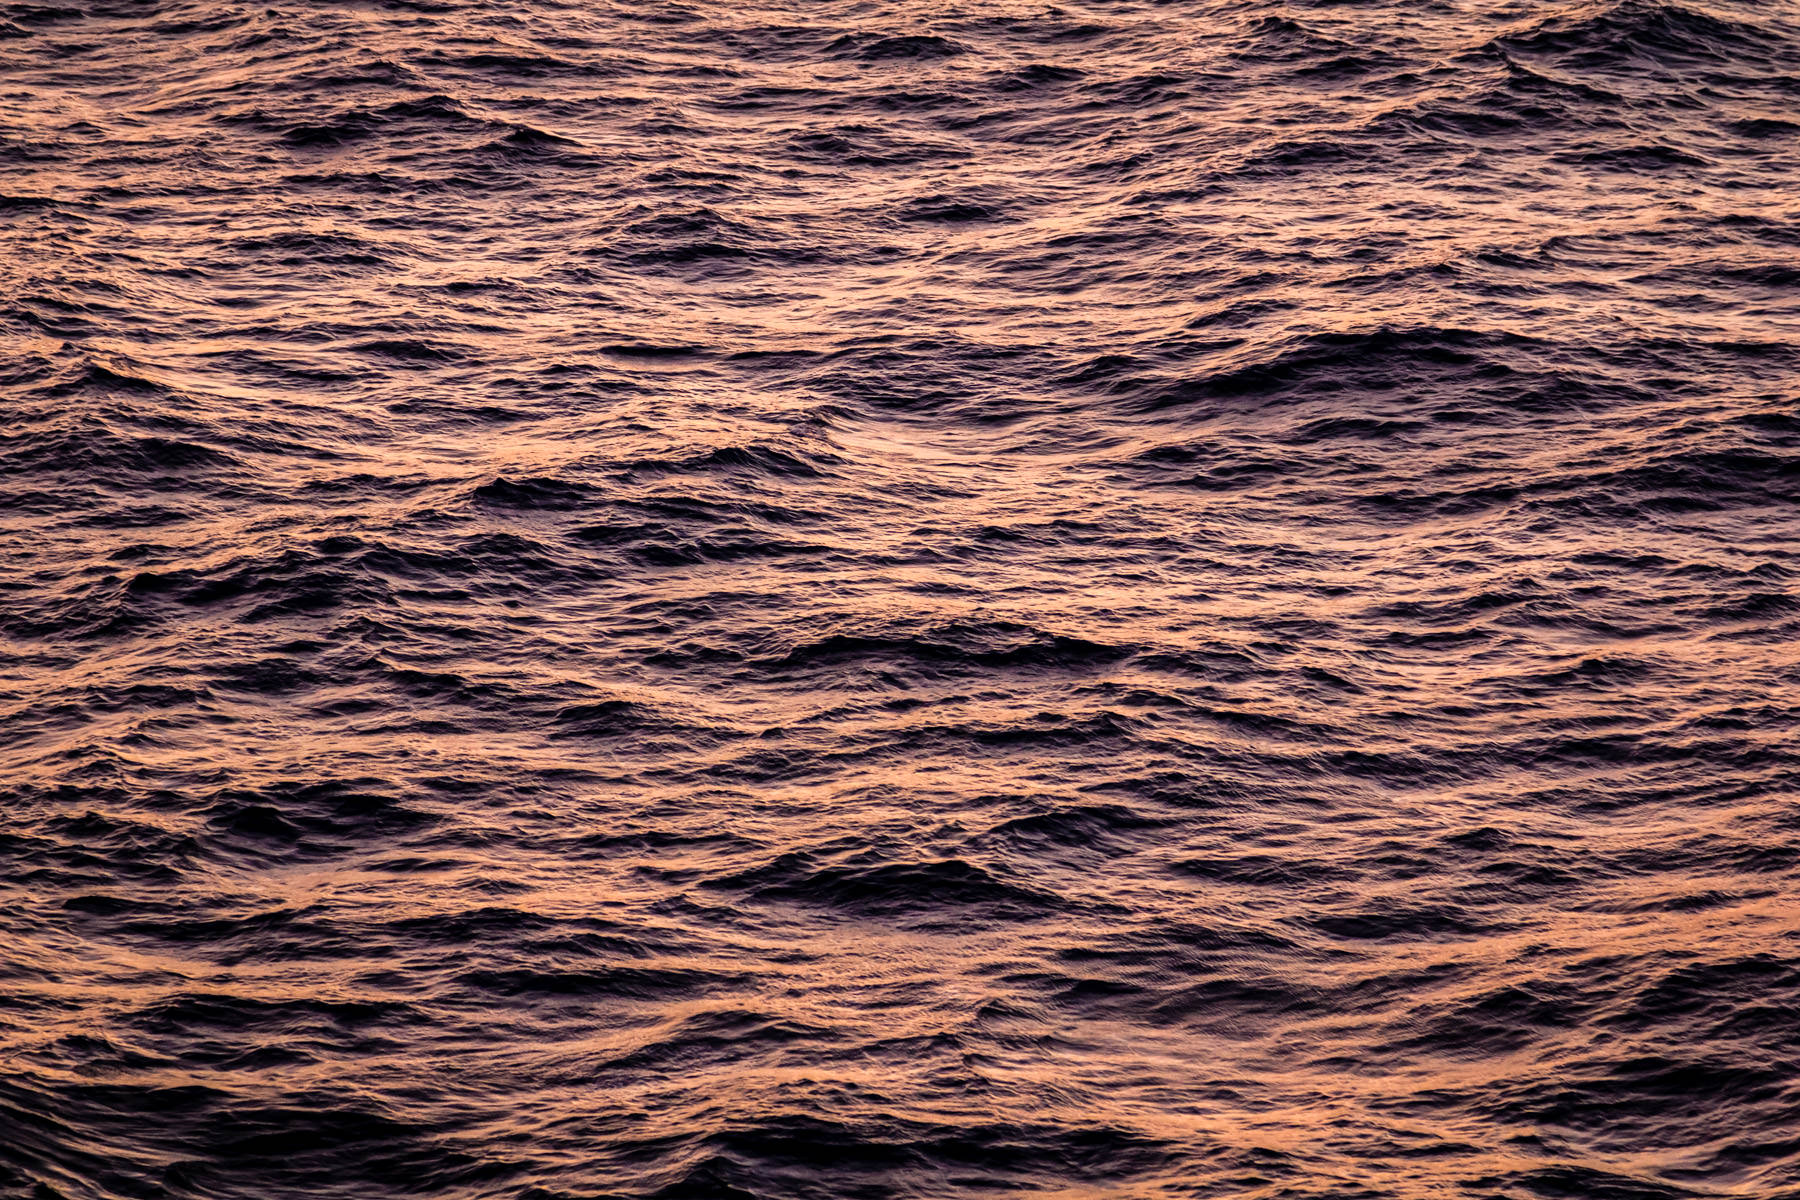 The Gulf of Mexico catches the early morning sunlight, highlighting its ever-changing surface as seen from the deck of the cruise ship Carnival Magic.